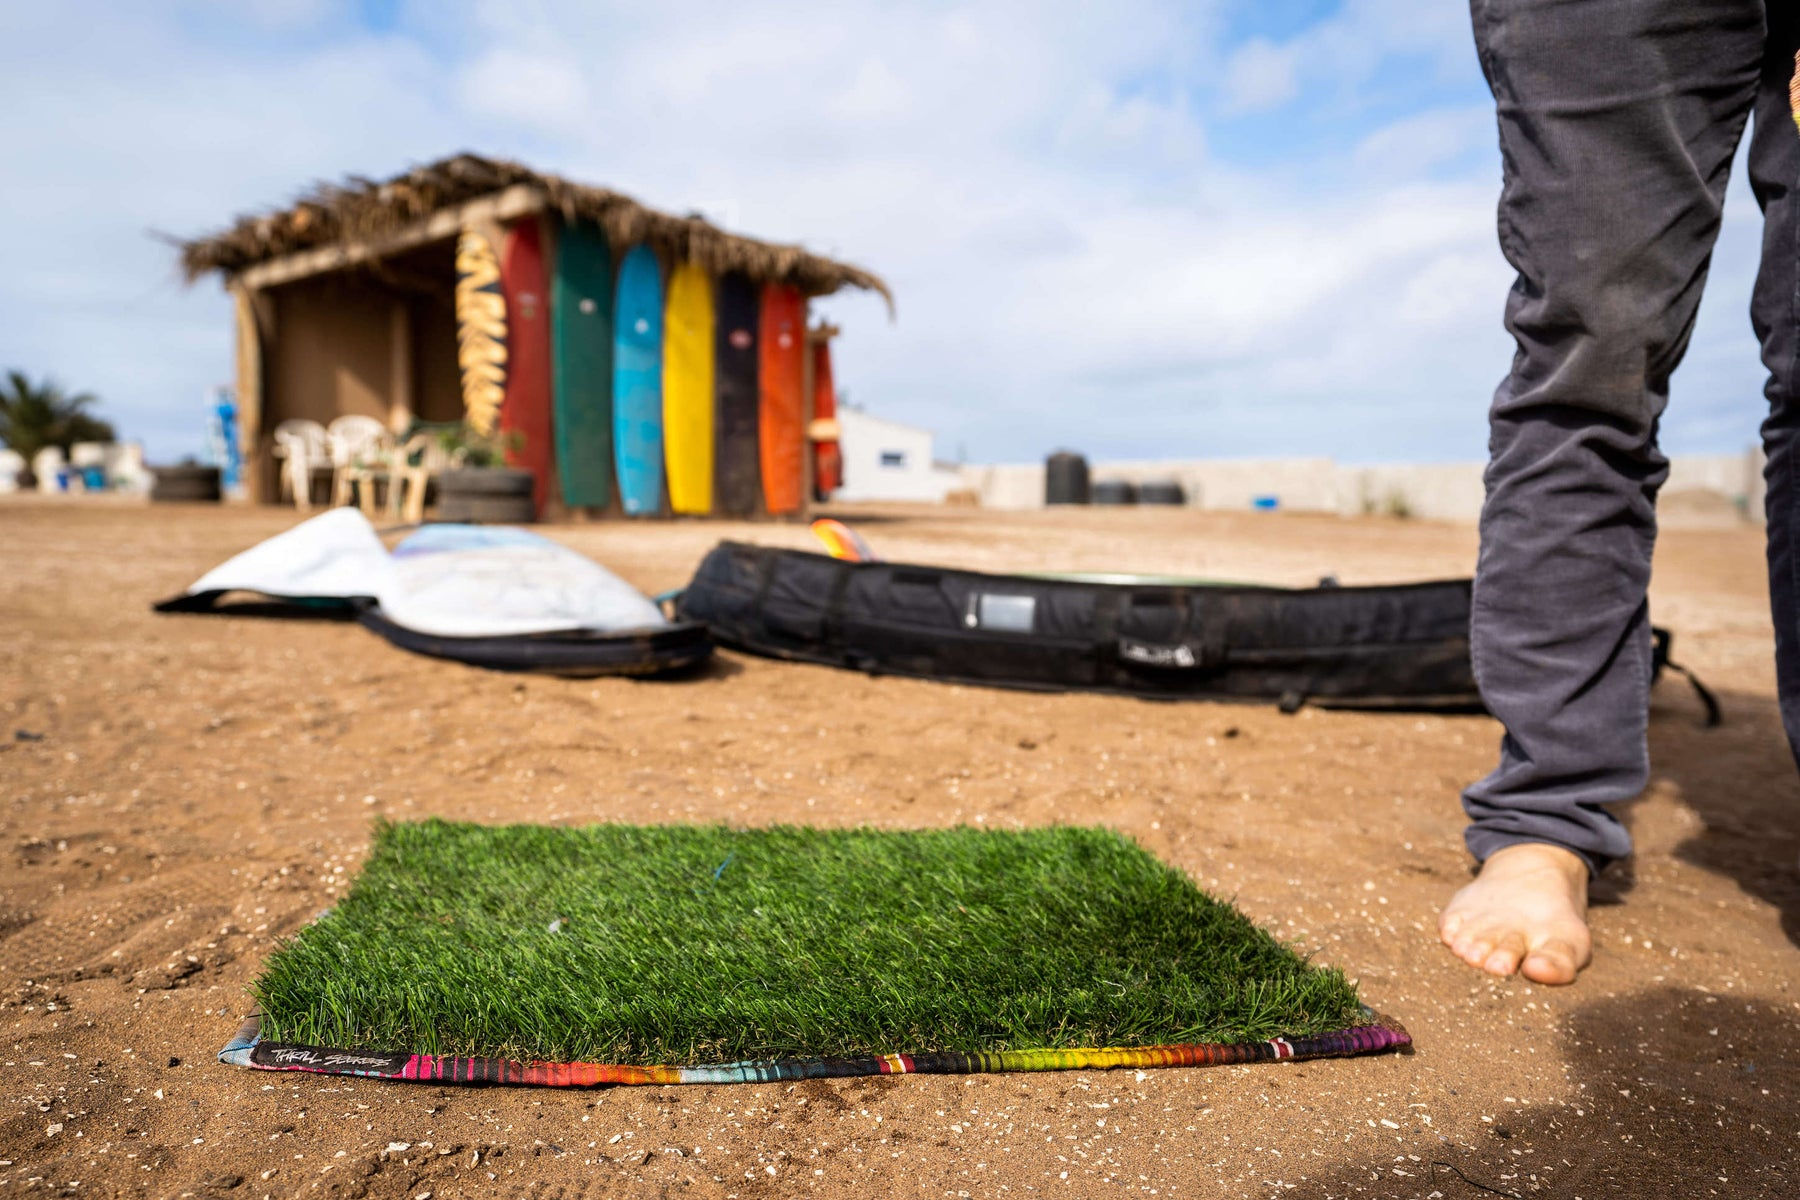 Grass Changing Mat. Thrill Seekers Good Time Grass! Surf, Moto, any adventure changing mats. Serape print border. Built for Fun.